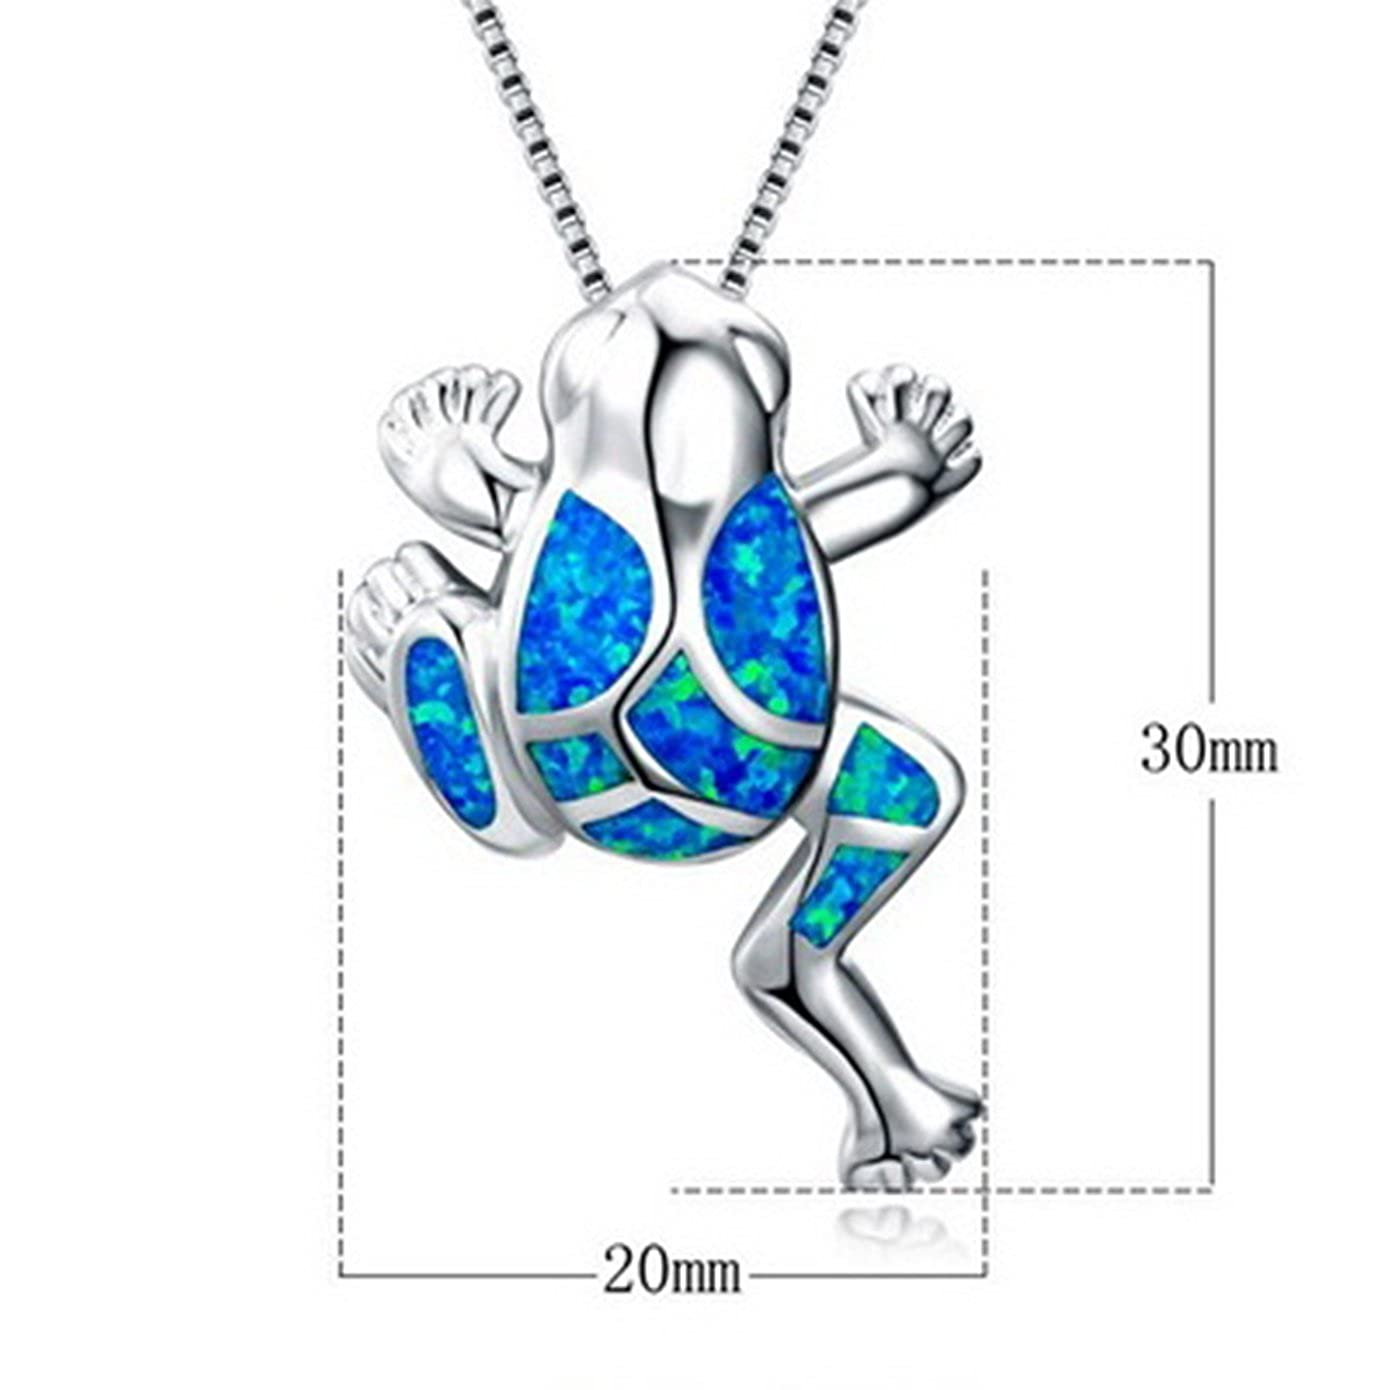 Fortonatori Created Blue Opal Frog Necklace 925 Silver Pendant Necklace 18 Chain